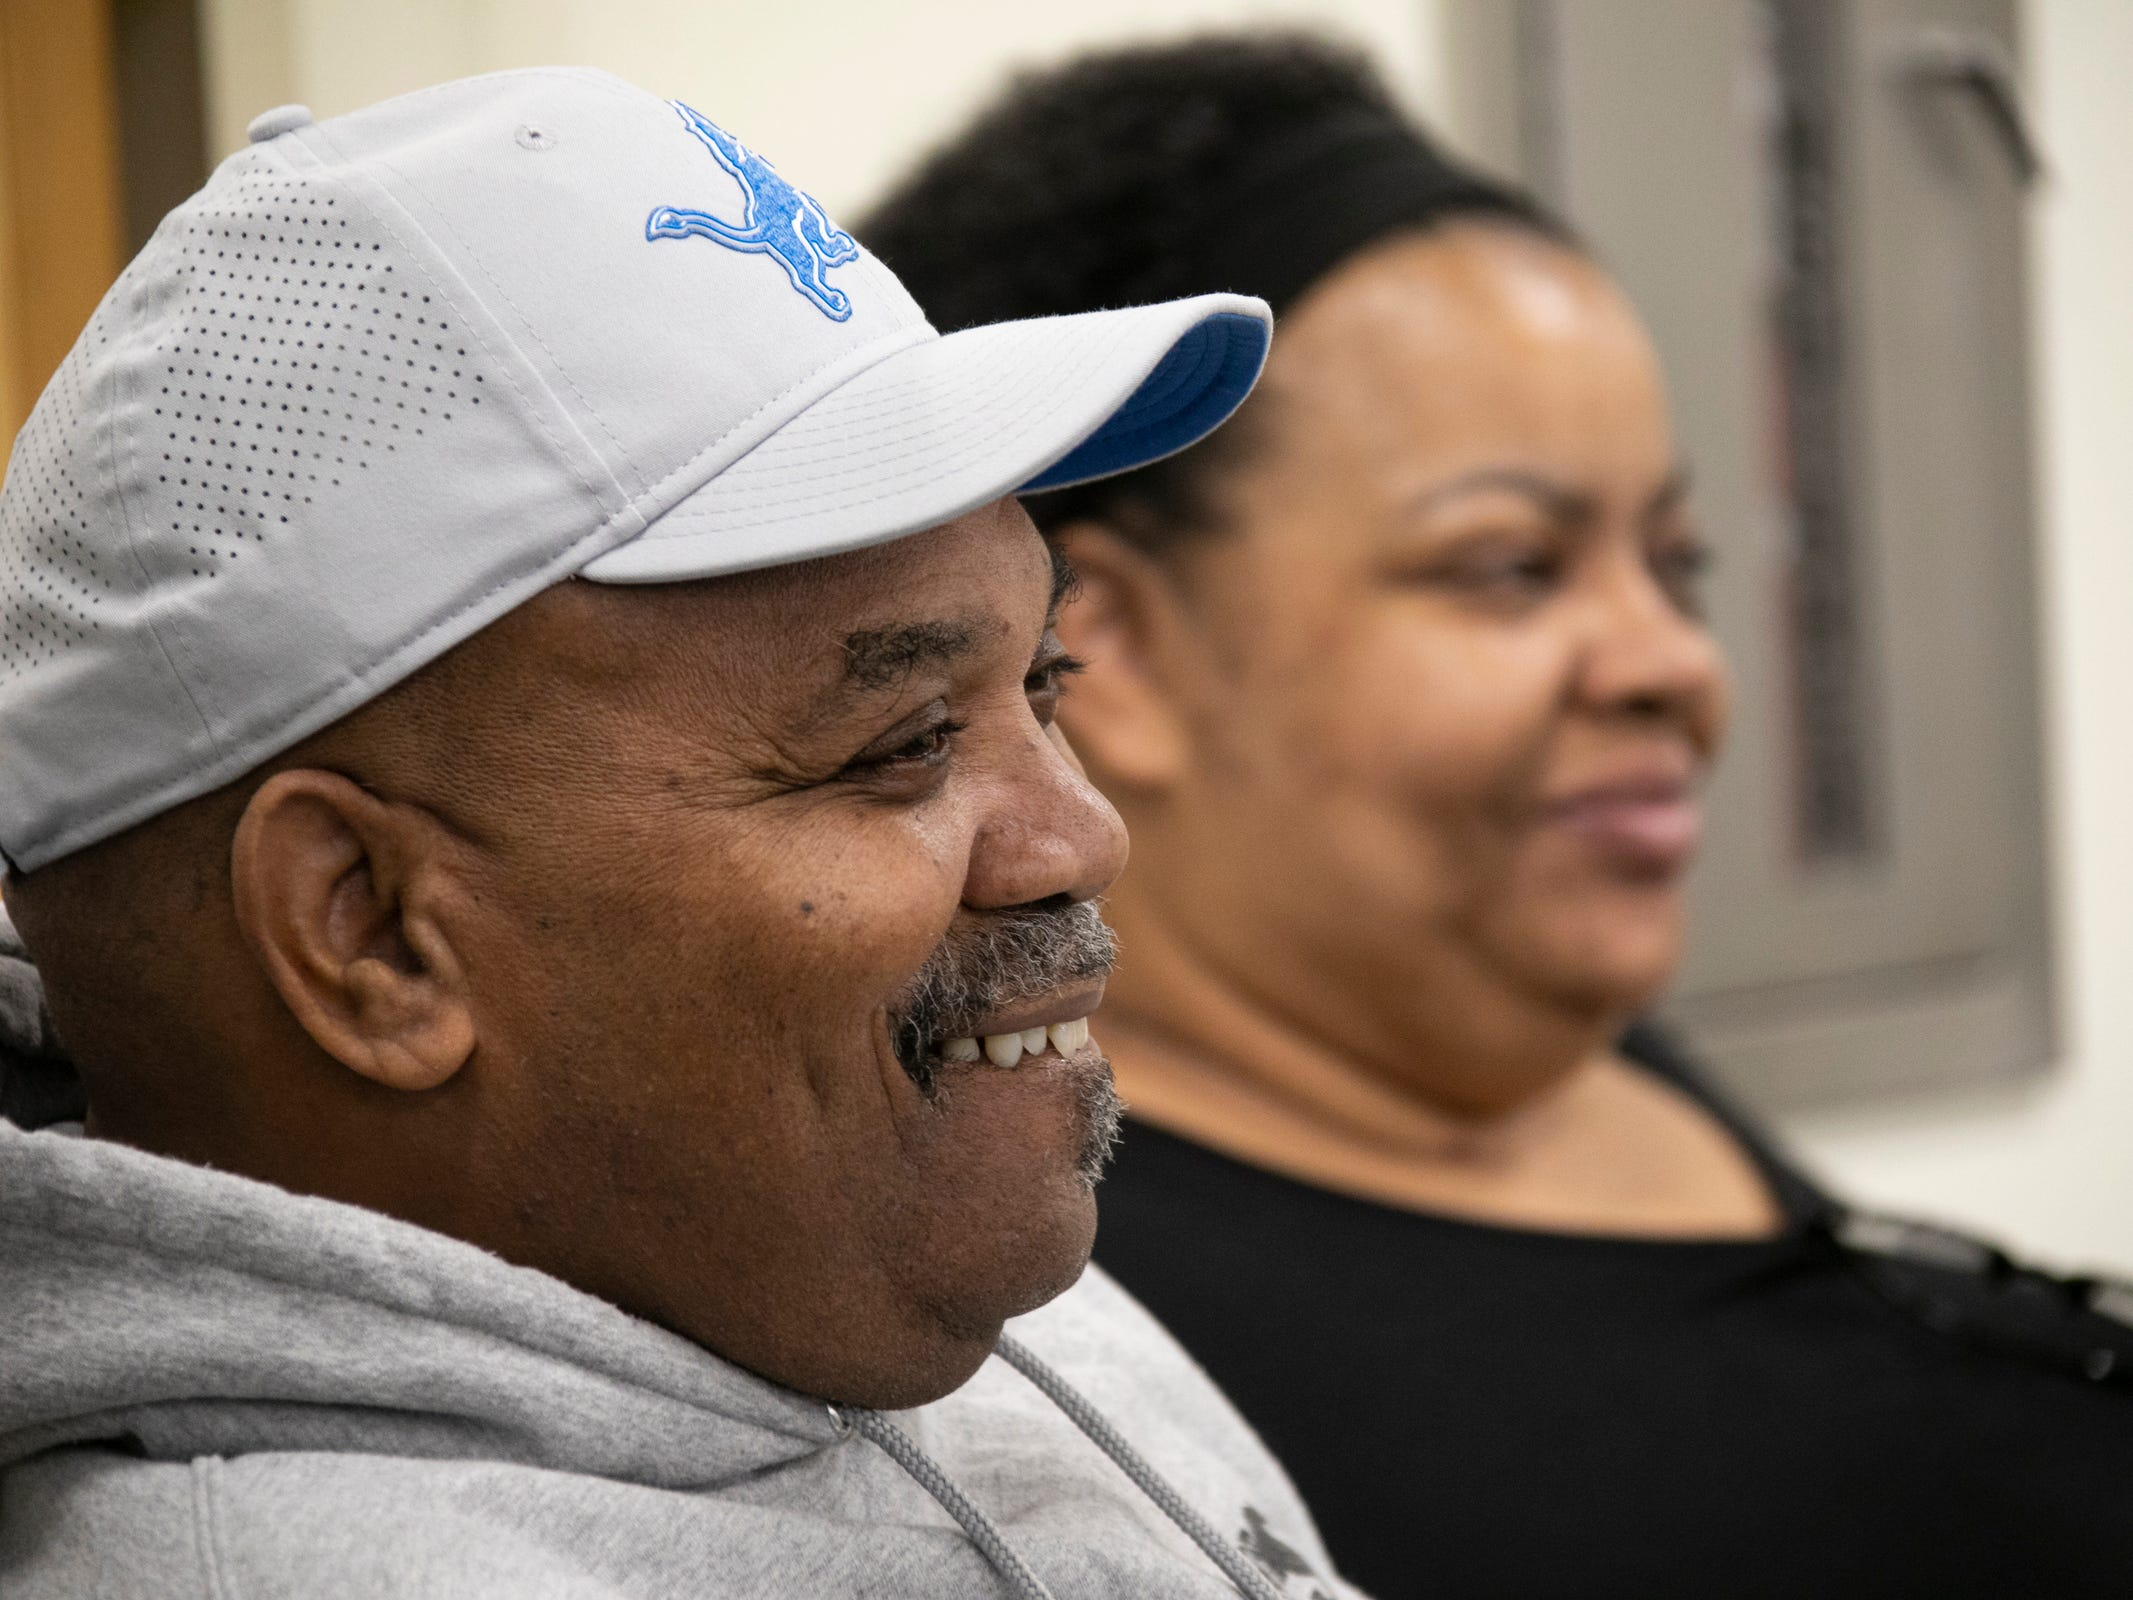 Robert and Jaqueline Flowers look on as their son, Trey Flowers, the newly signed defensive end for the Detroit Lions, speaks to the media Thursday, March 14, 2019 at the practice facility in Allen Park.